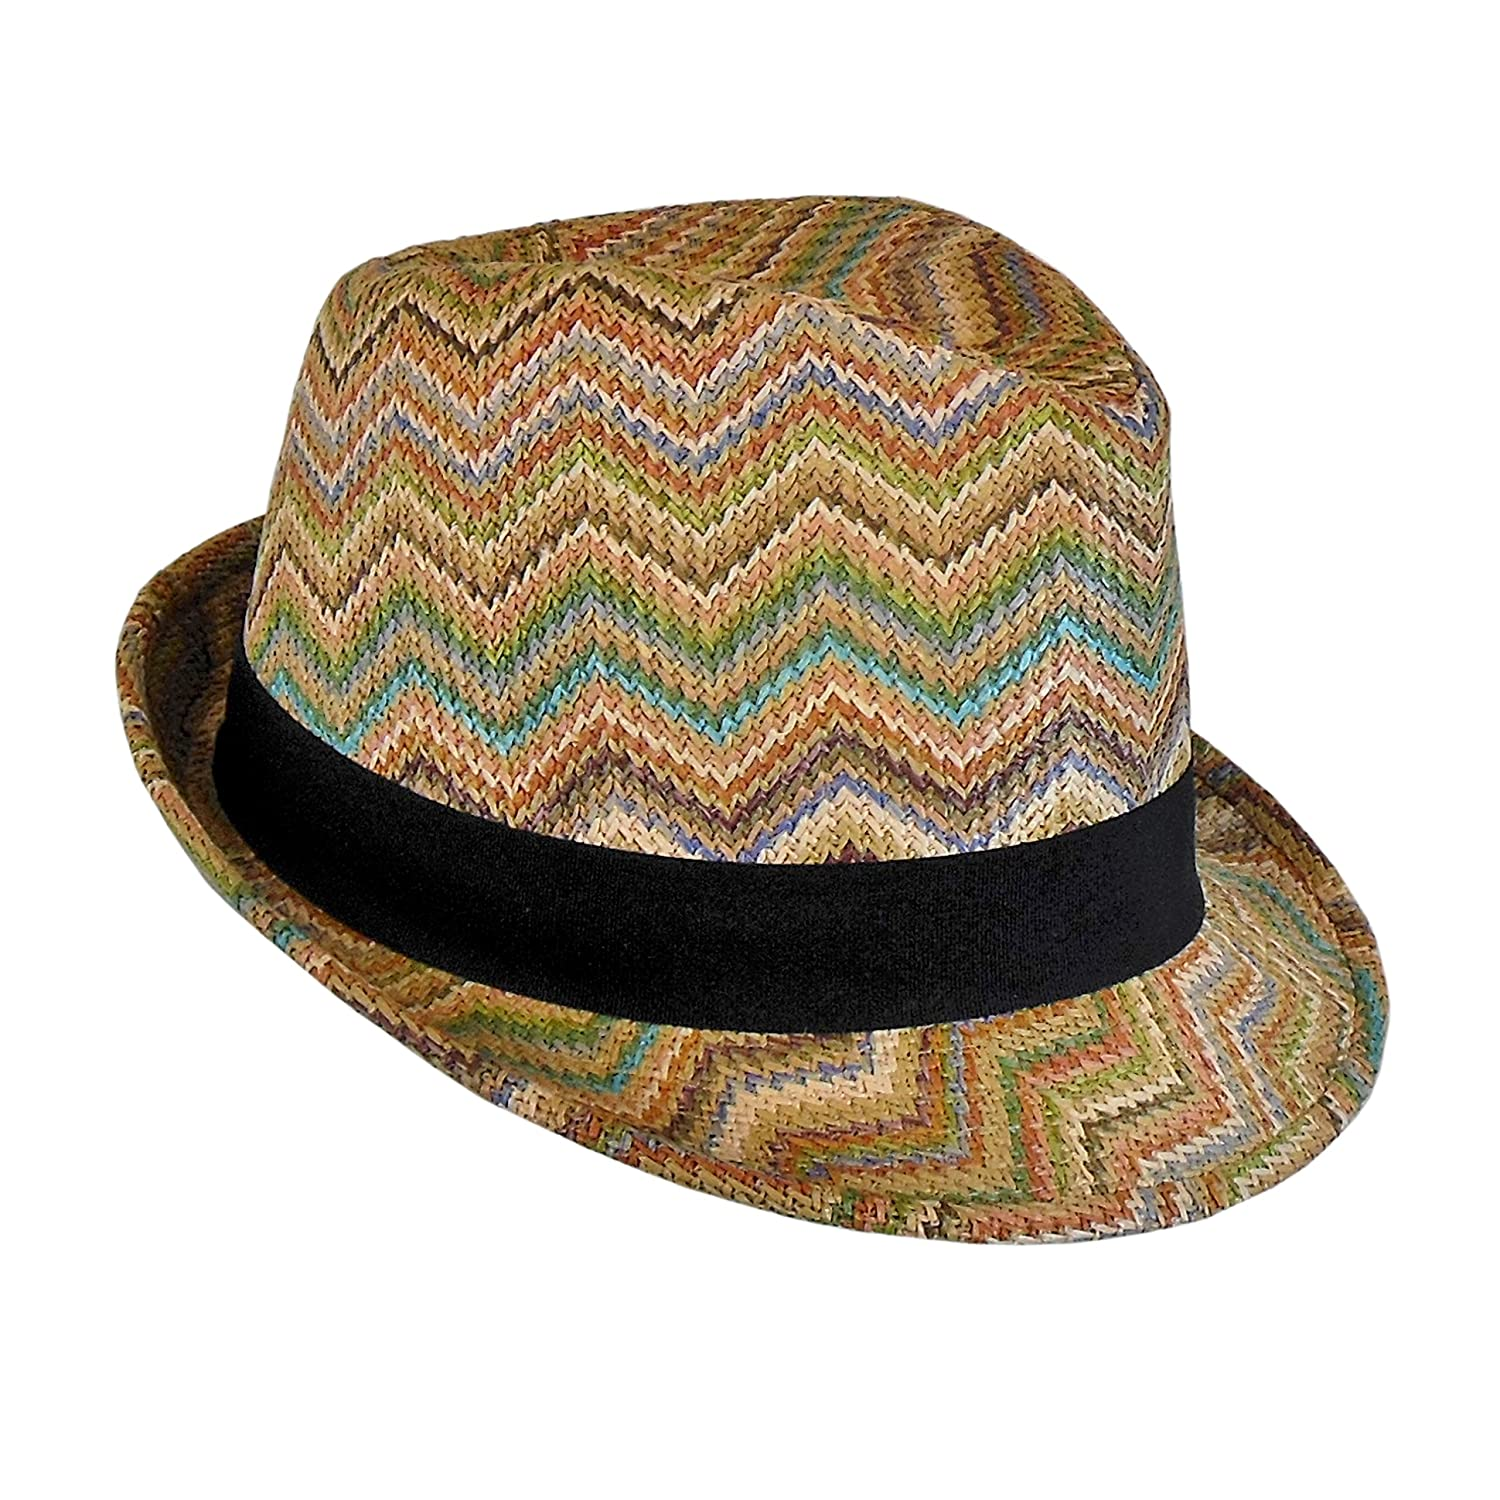 dbe7f085 Bohemian Summer Straw Fedora Hat for Women, Cute Chevron Zig Zag Striped,  One Size at Amazon Women's Clothing store: